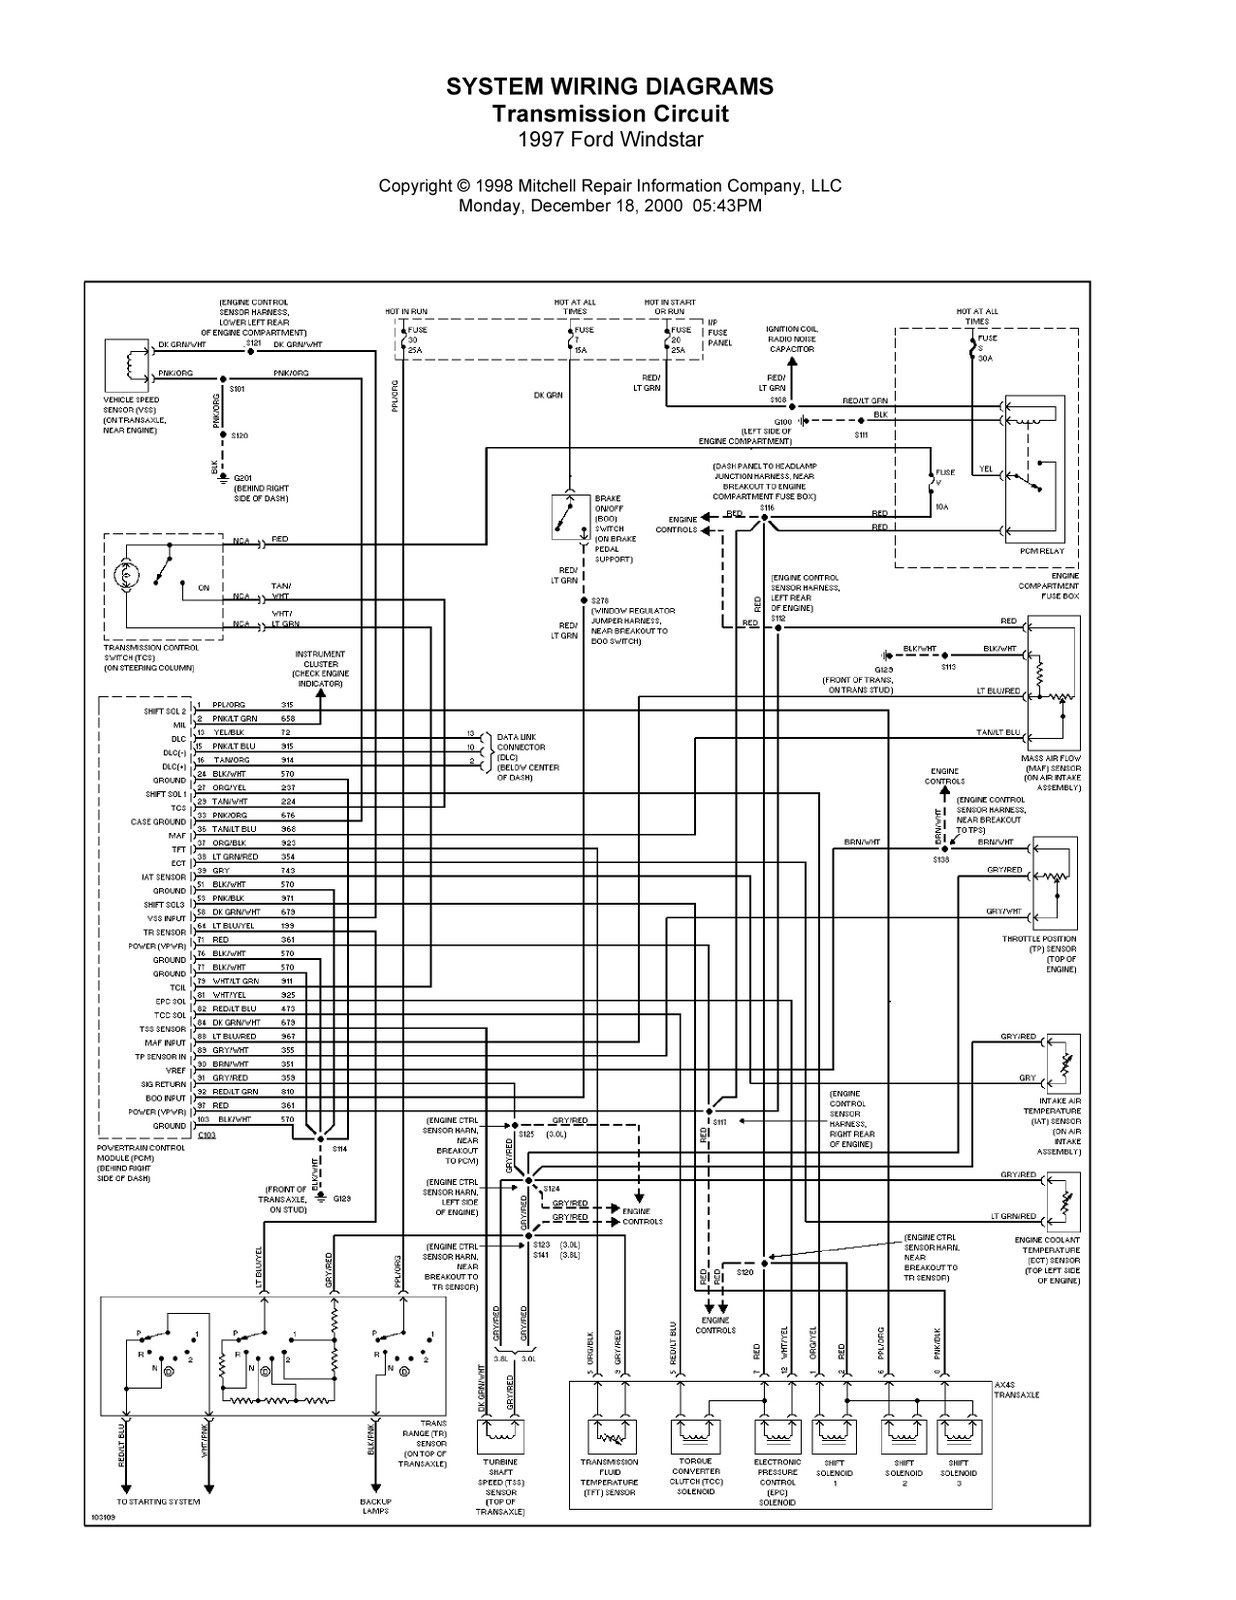 1999 Ford Windstar Wiring Diagram 4 Wire Oxygen Sensor 1997 Complete System Diagrams